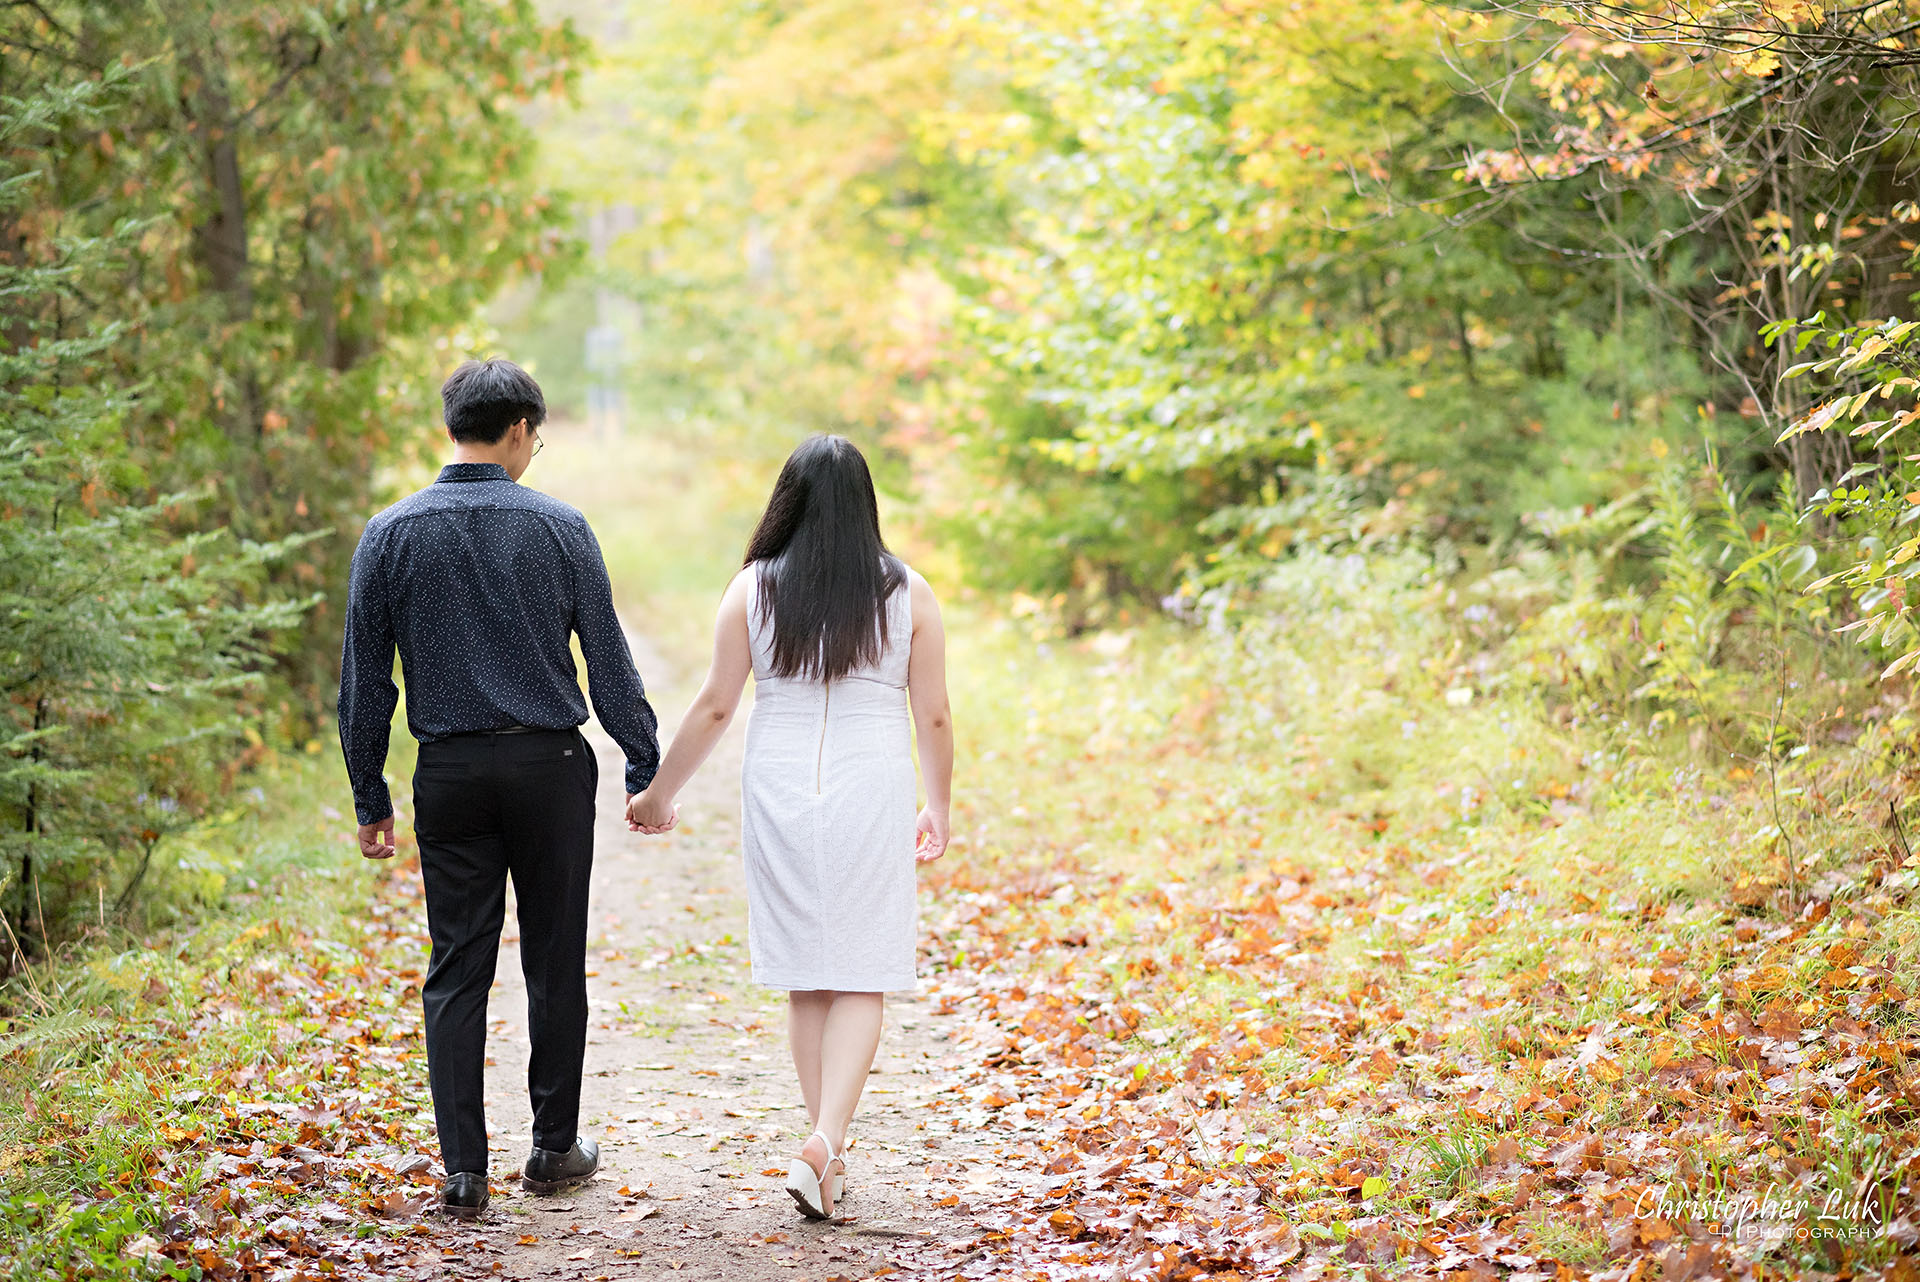 Christopher Luk Toronto Wedding Photographer Stouffville Forest Conservation Park Engagement Session Candid Natural Photojournalistic Bride Groom Walking Together Holding Hands Autumn Fall Leaves Landscape